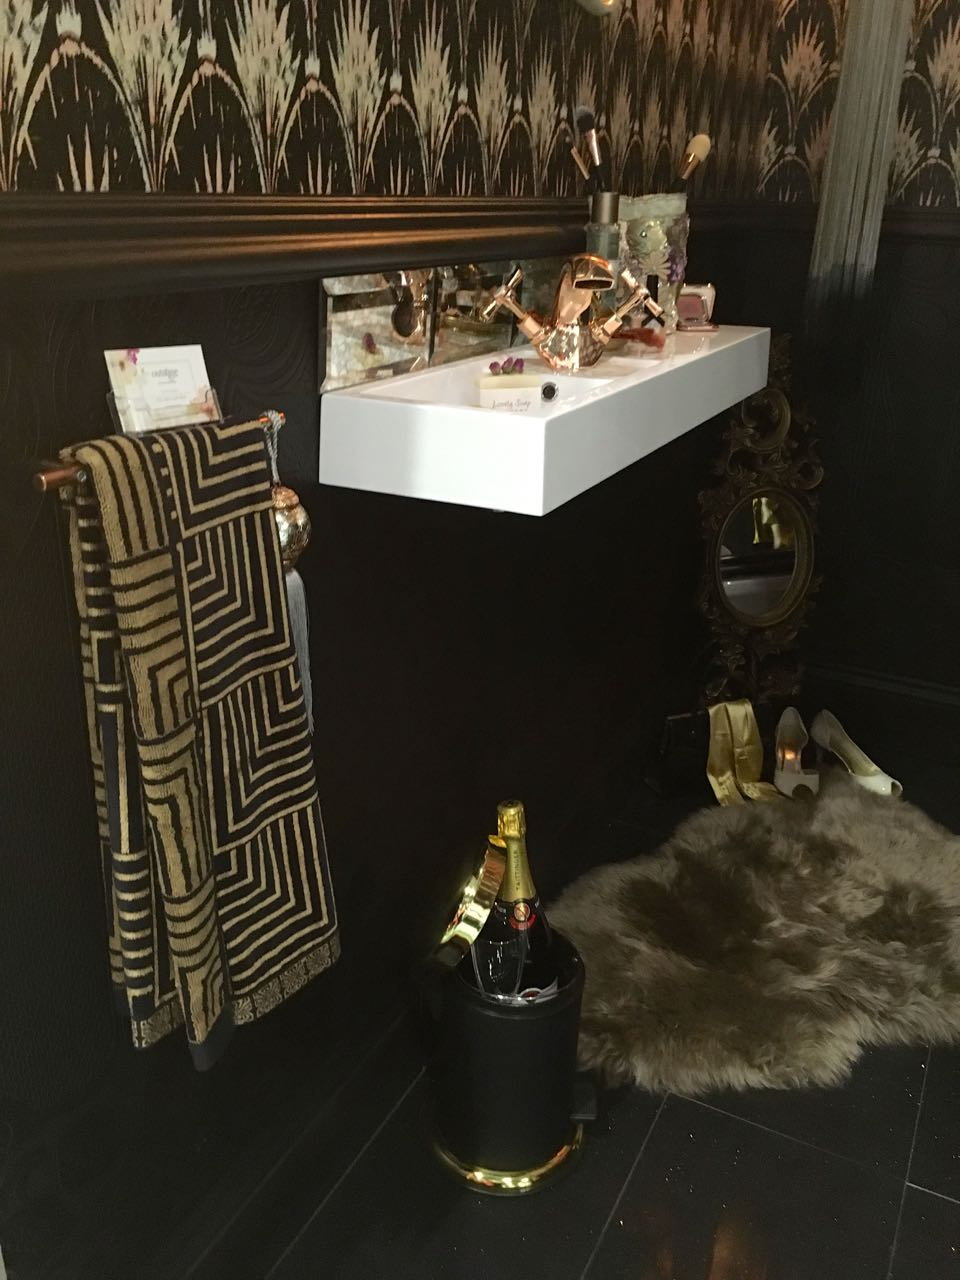 Black, white and gold bring a touch of glamour